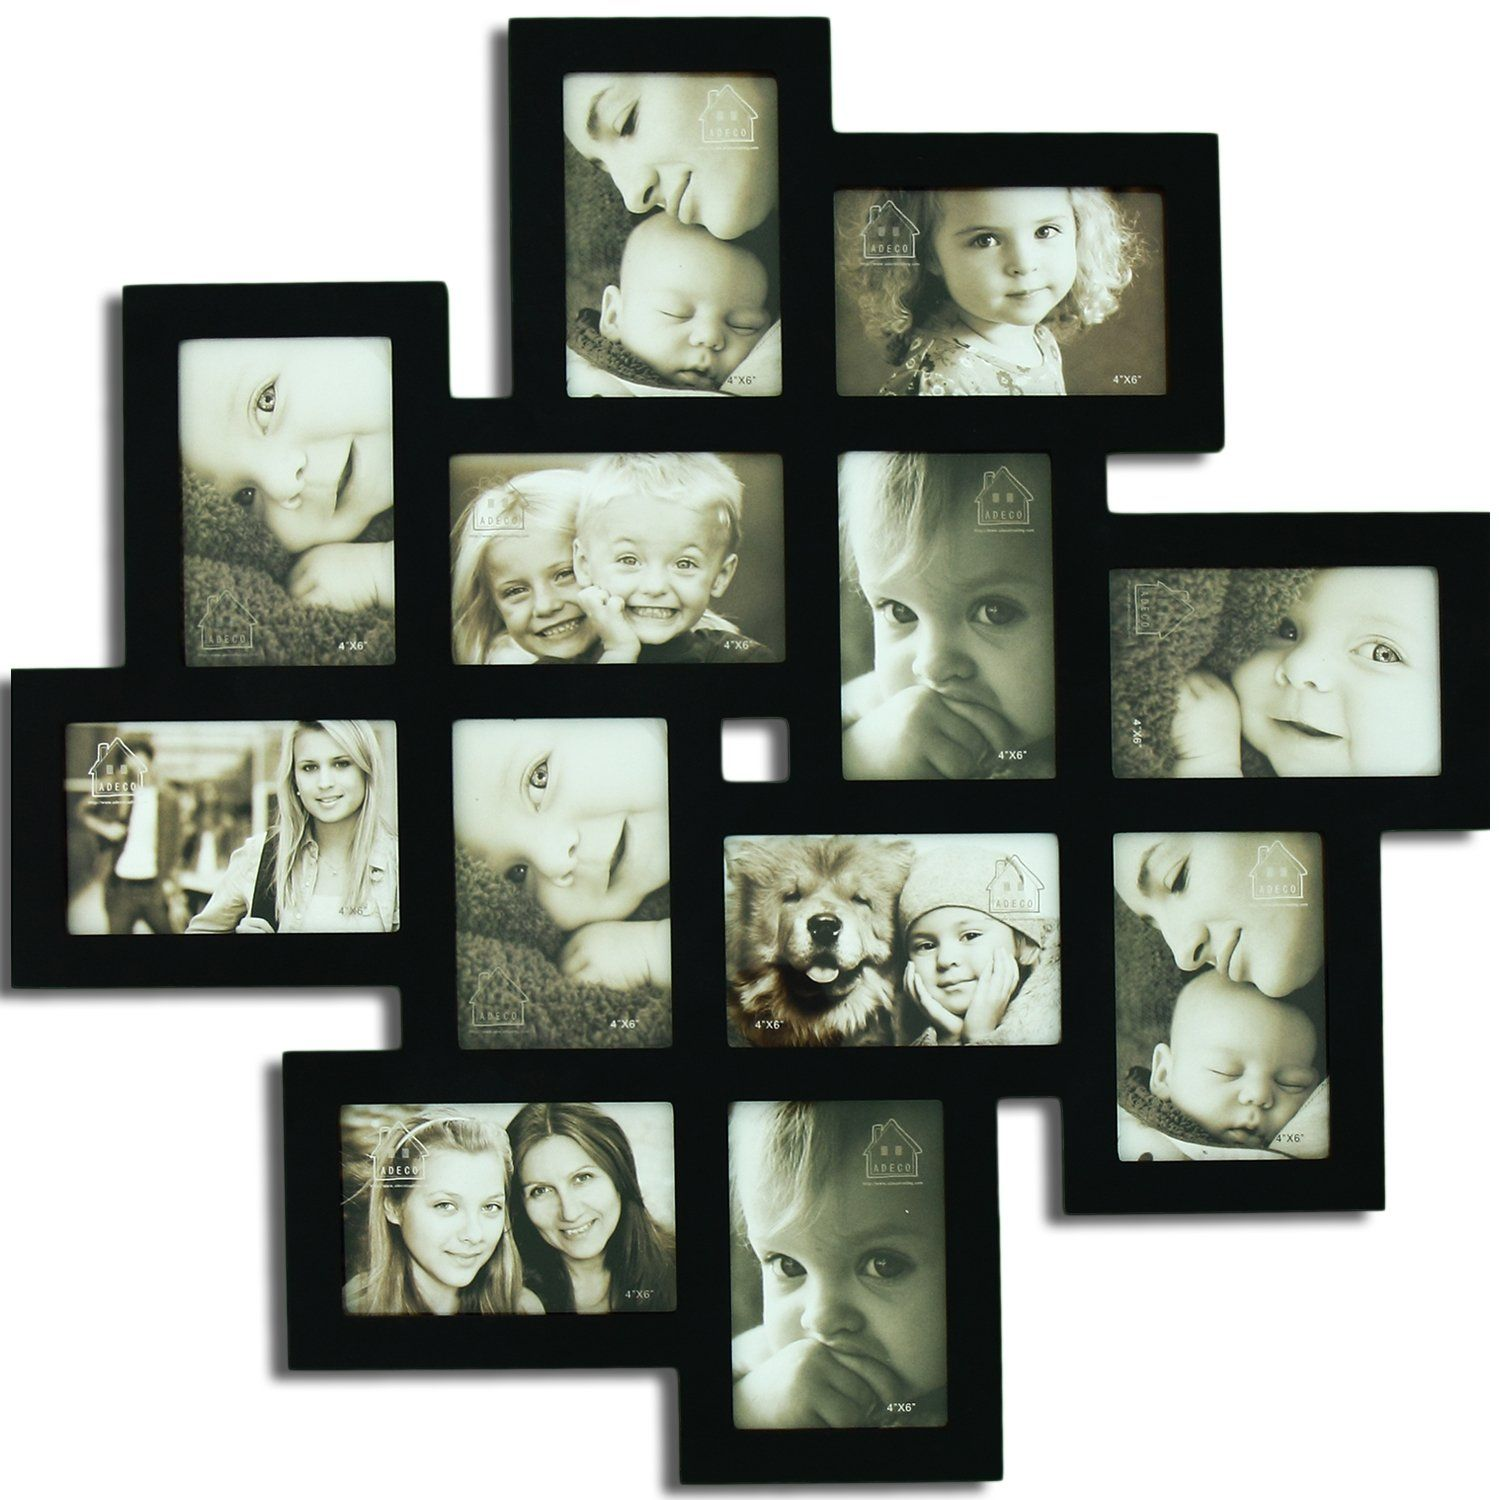 Robot Check Wall Collage Picture Frames Framed Photo Collage Hanging Picture Frames